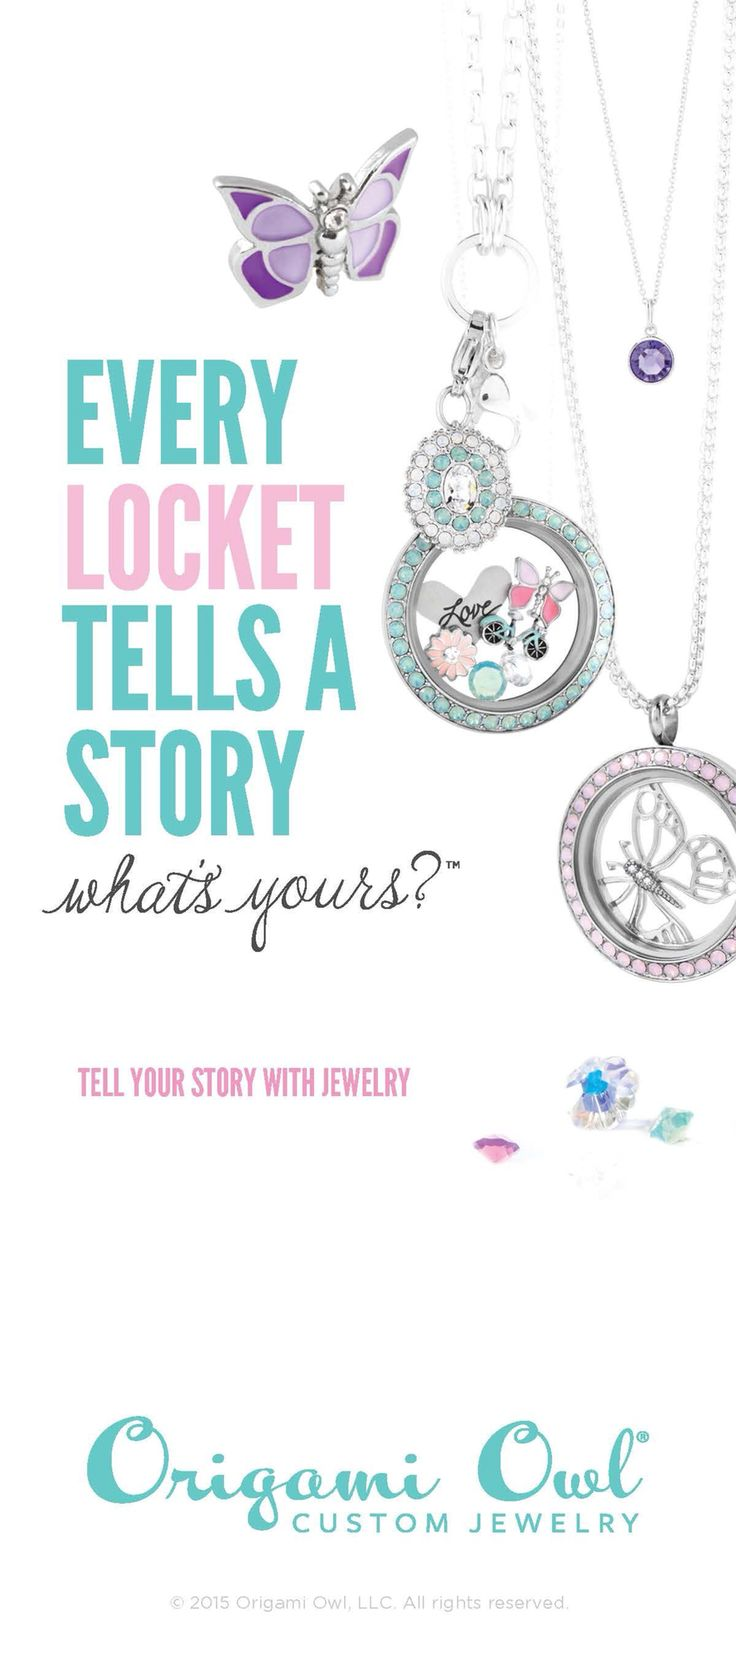 83 best origami owl springsummer 2015 collection images on origami owl is launching our new spring collection todayautiful spring tones jeuxipadfo Choice Image